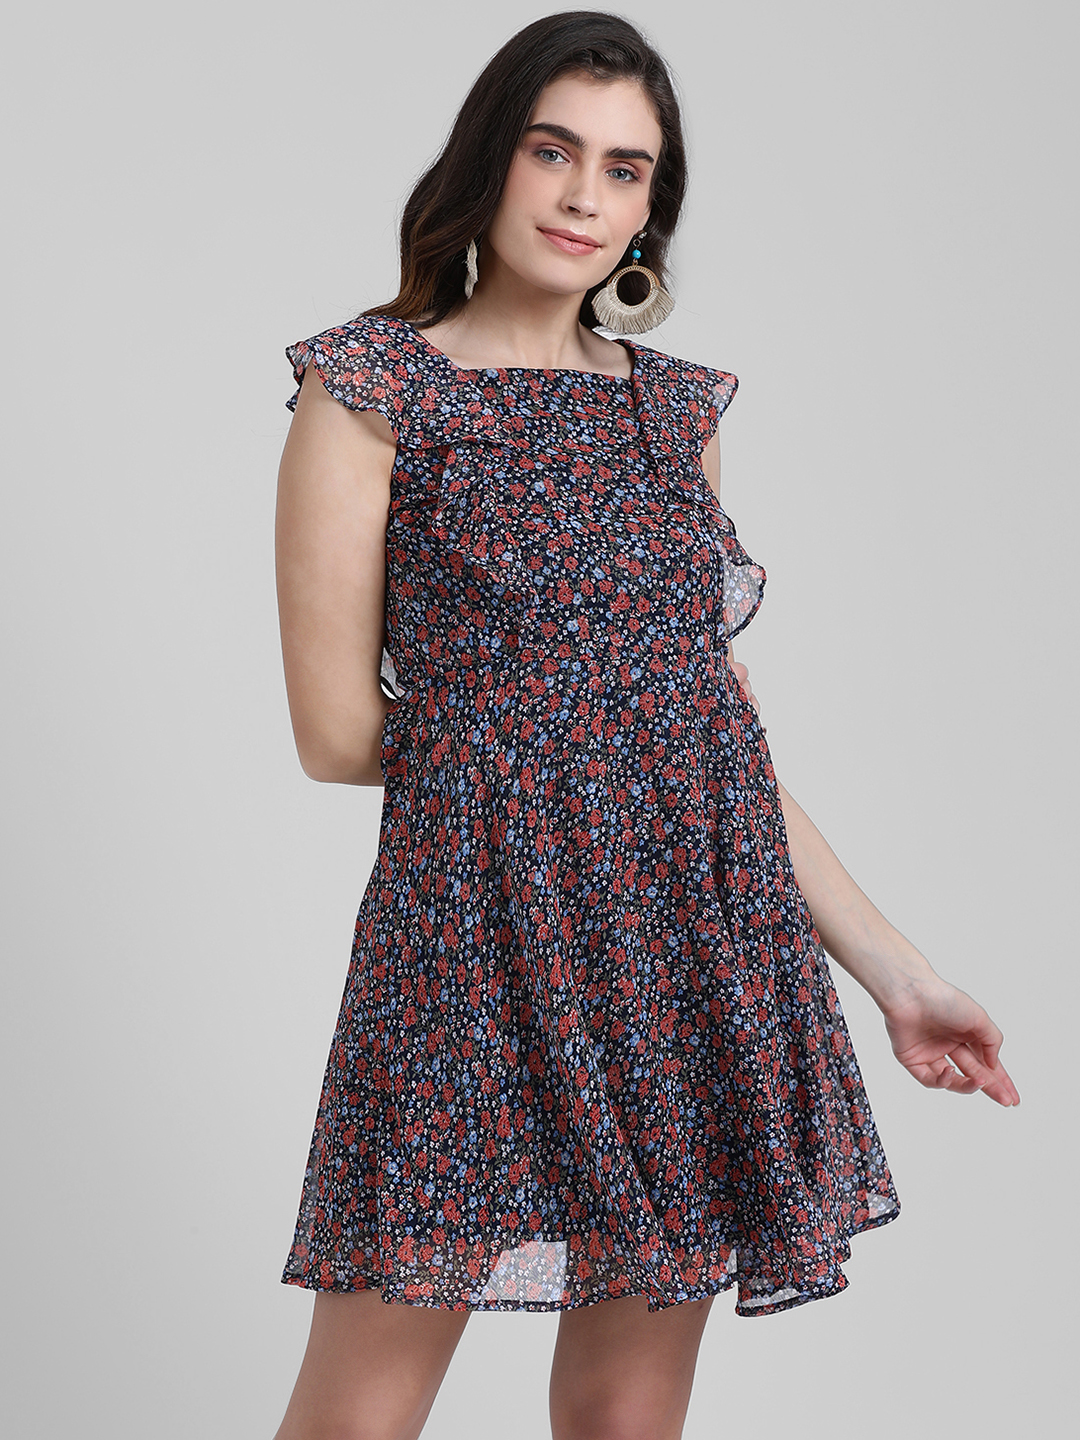 Zink London | Zink London Women's Multi Solid Fit and Flare Dress